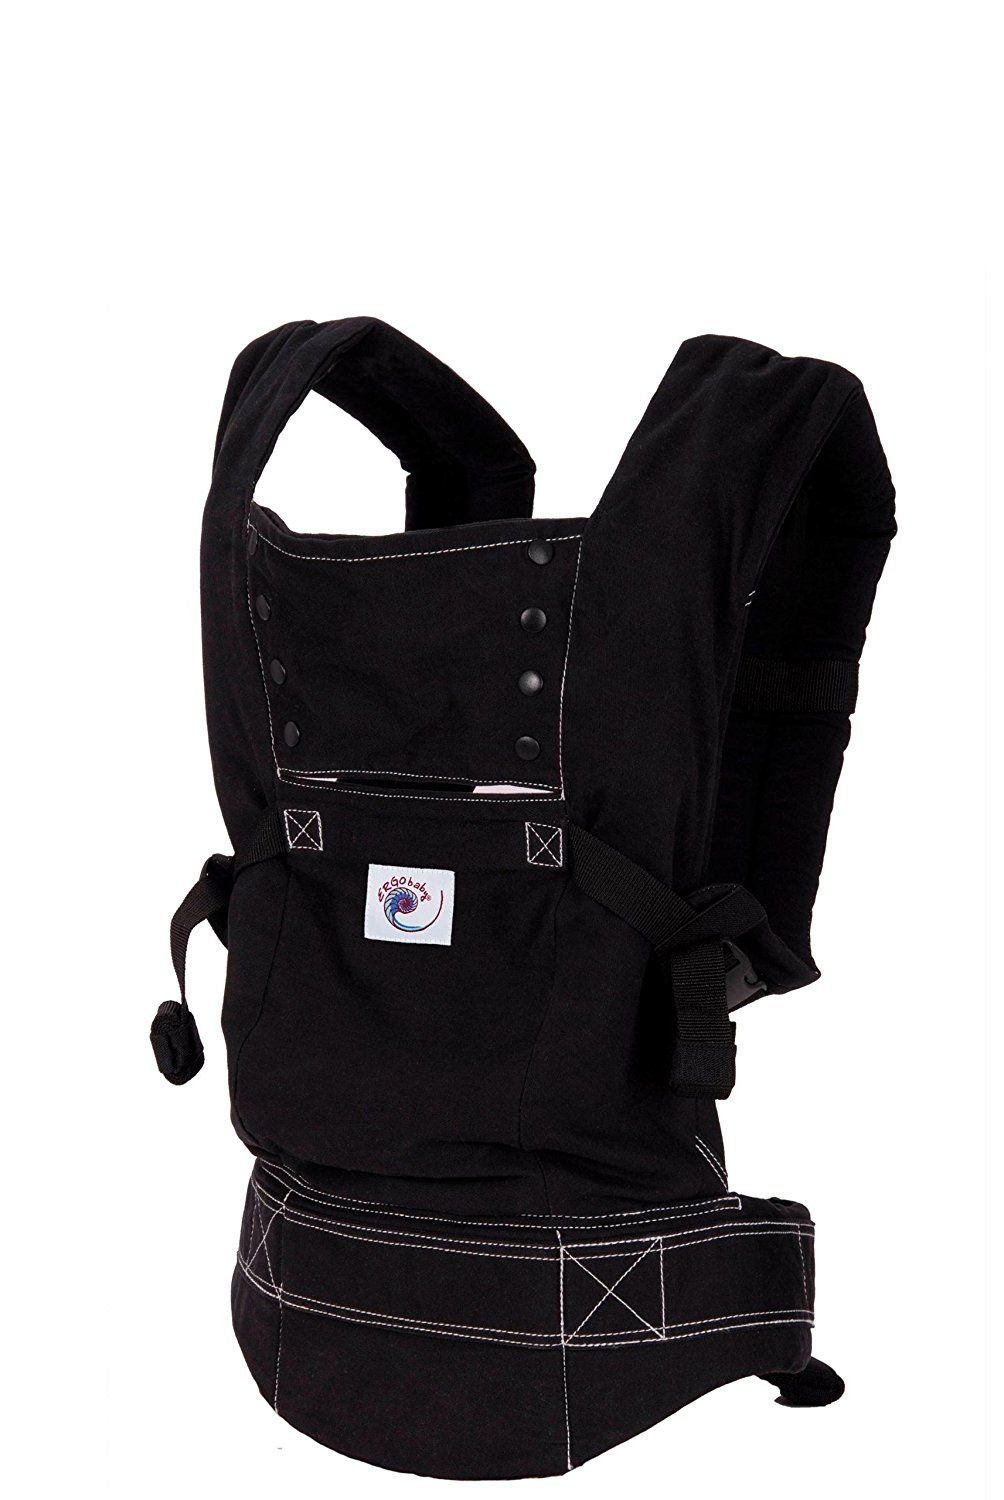 51cd2fb7395 Amazon.com   Ergo baby Ergo Sport Carrier Black   Child Carrier Front Packs    Baby